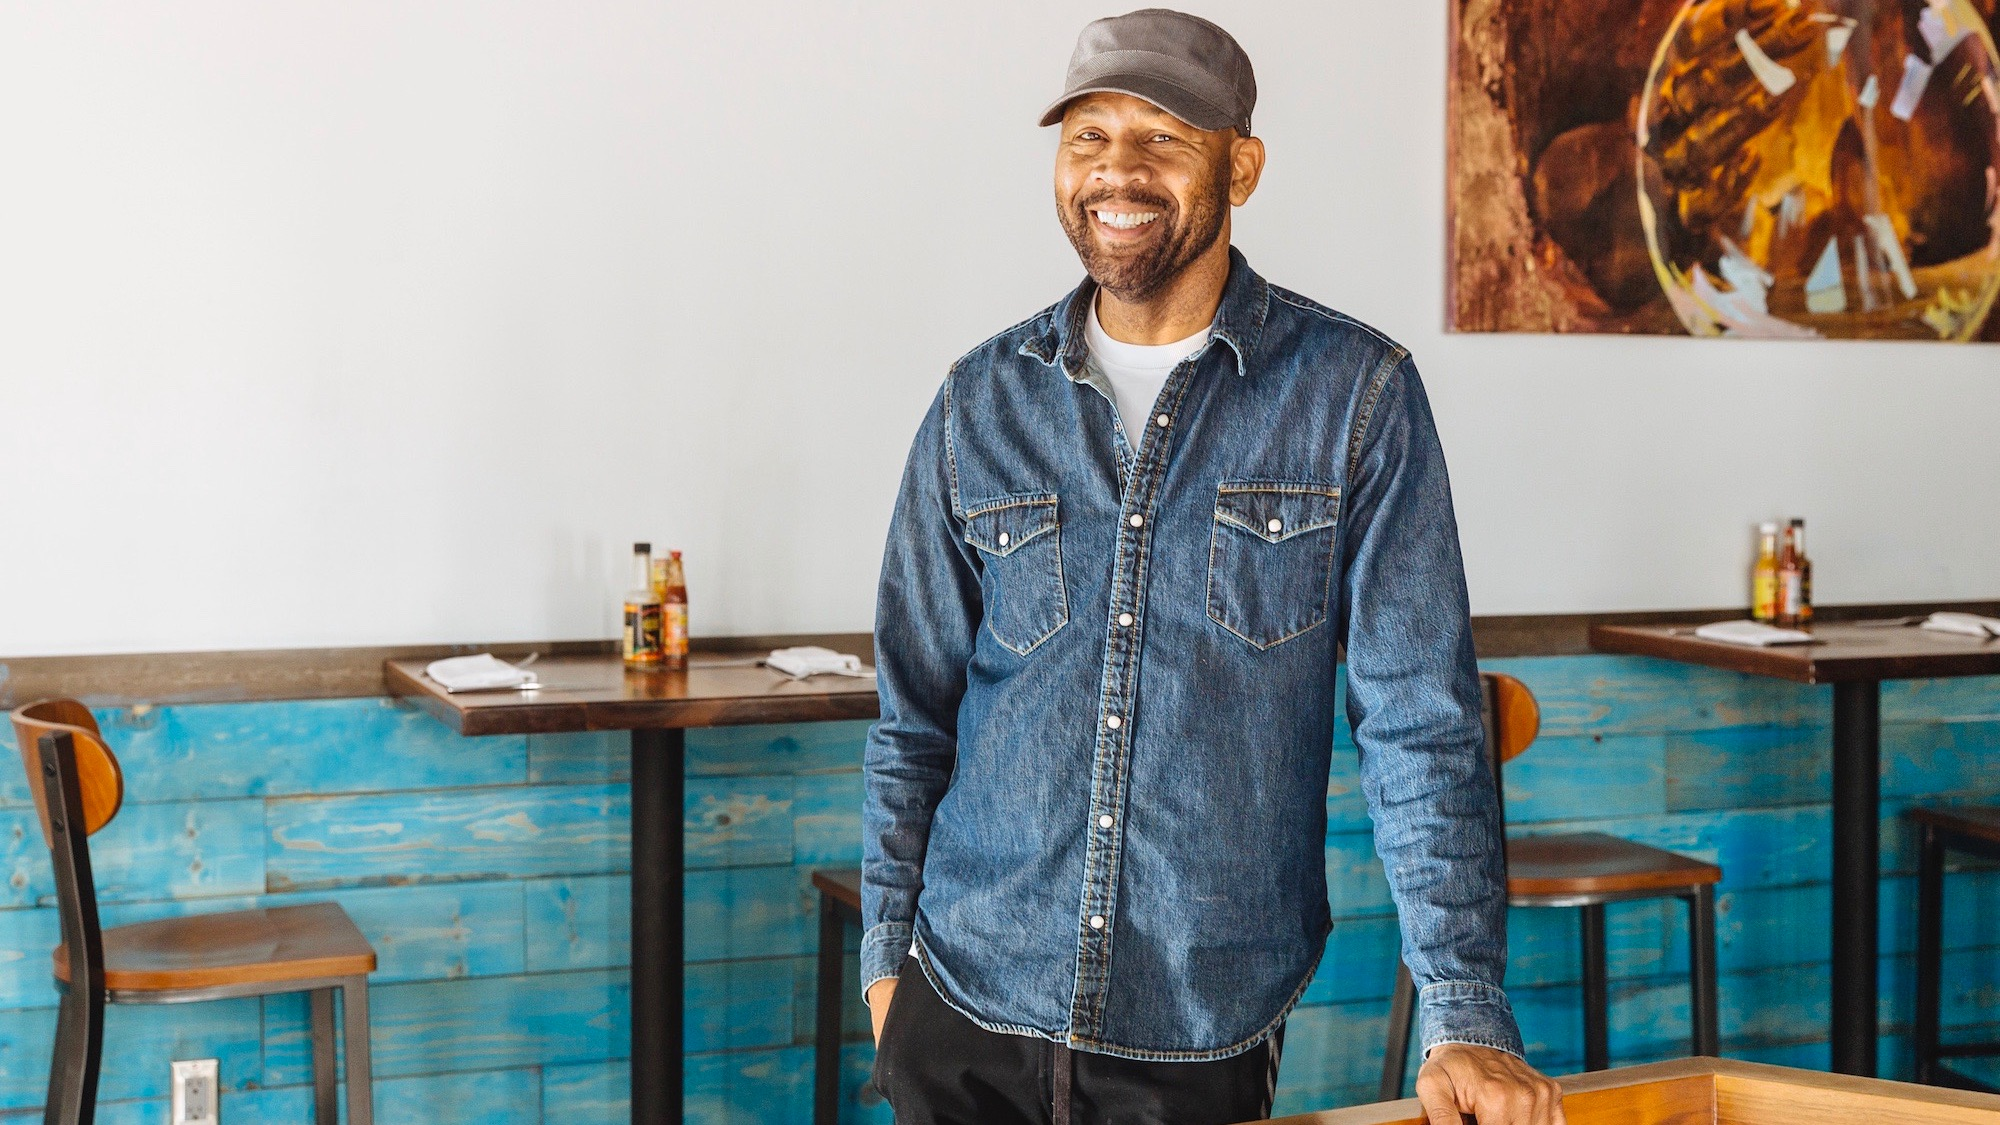 286f17be8ad 10 Under-the-Radar Chefs to Know in the SF Bay Area - Zagat